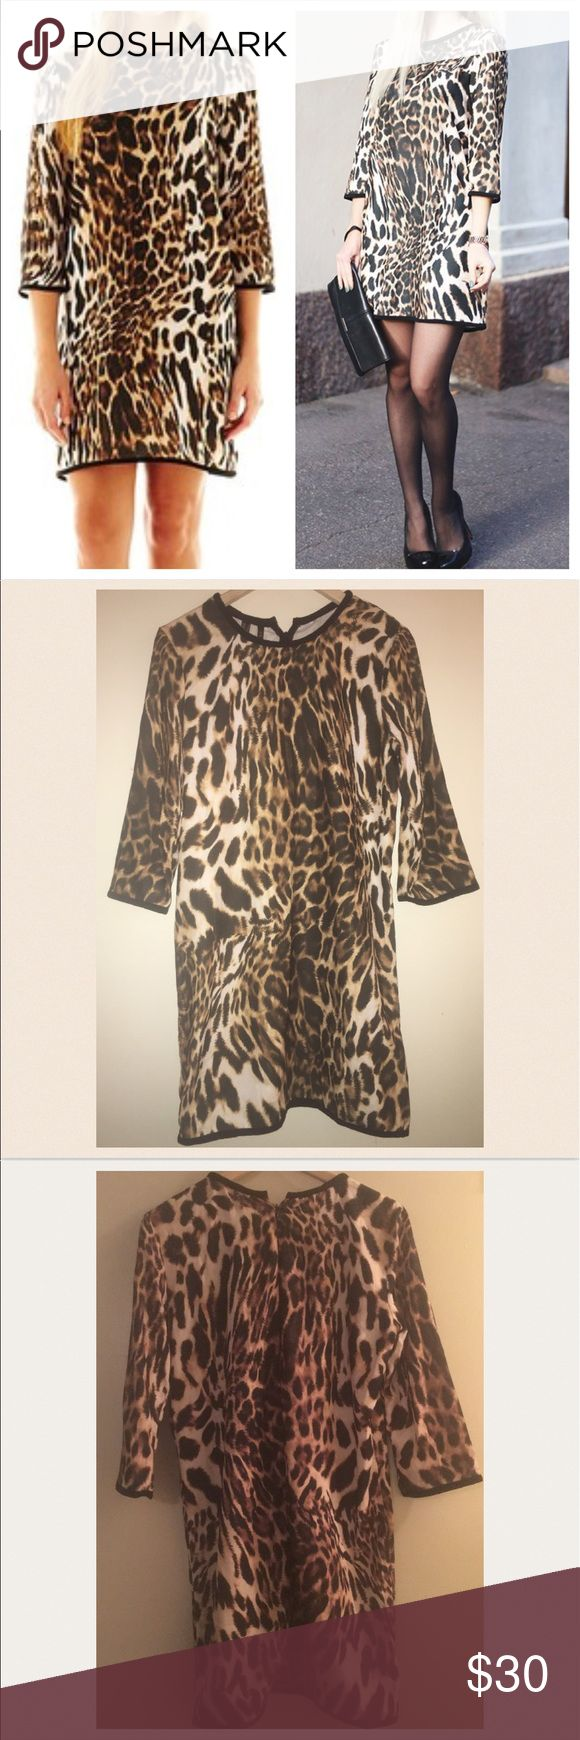 Just InMNG by Mango Animal print Shift Dress MNG by Mango Leopard Print  Out of stock Always a stunner, a chic leopard print lends dramatic style to our dress. polyester machine wash, dry flat imported. NWT 3/4 sleeves. Versatile and great for Jewelry layering. MNG by Mango Dresses